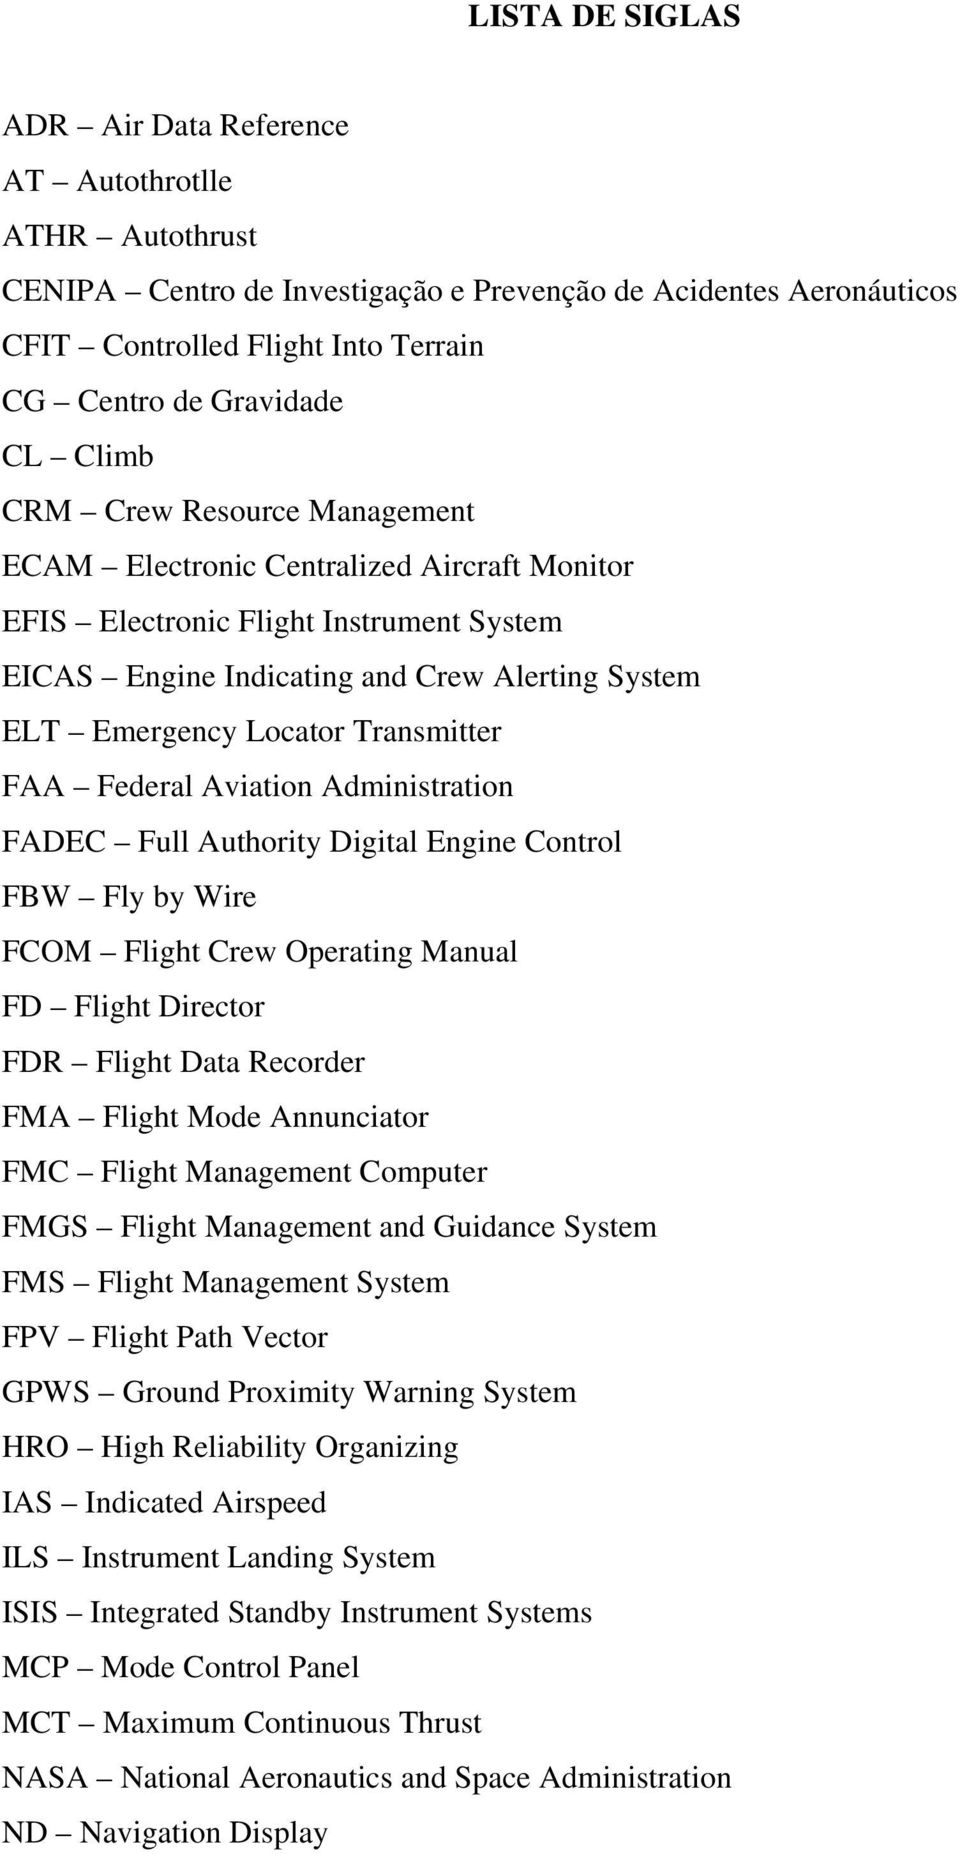 Transmitter FAA Federal Aviation Administration FADEC Full Authority Digital Engine Control FBW Fly by Wire FCOM Flight Crew Operating Manual FD Flight Director FDR Flight Data Recorder FMA Flight